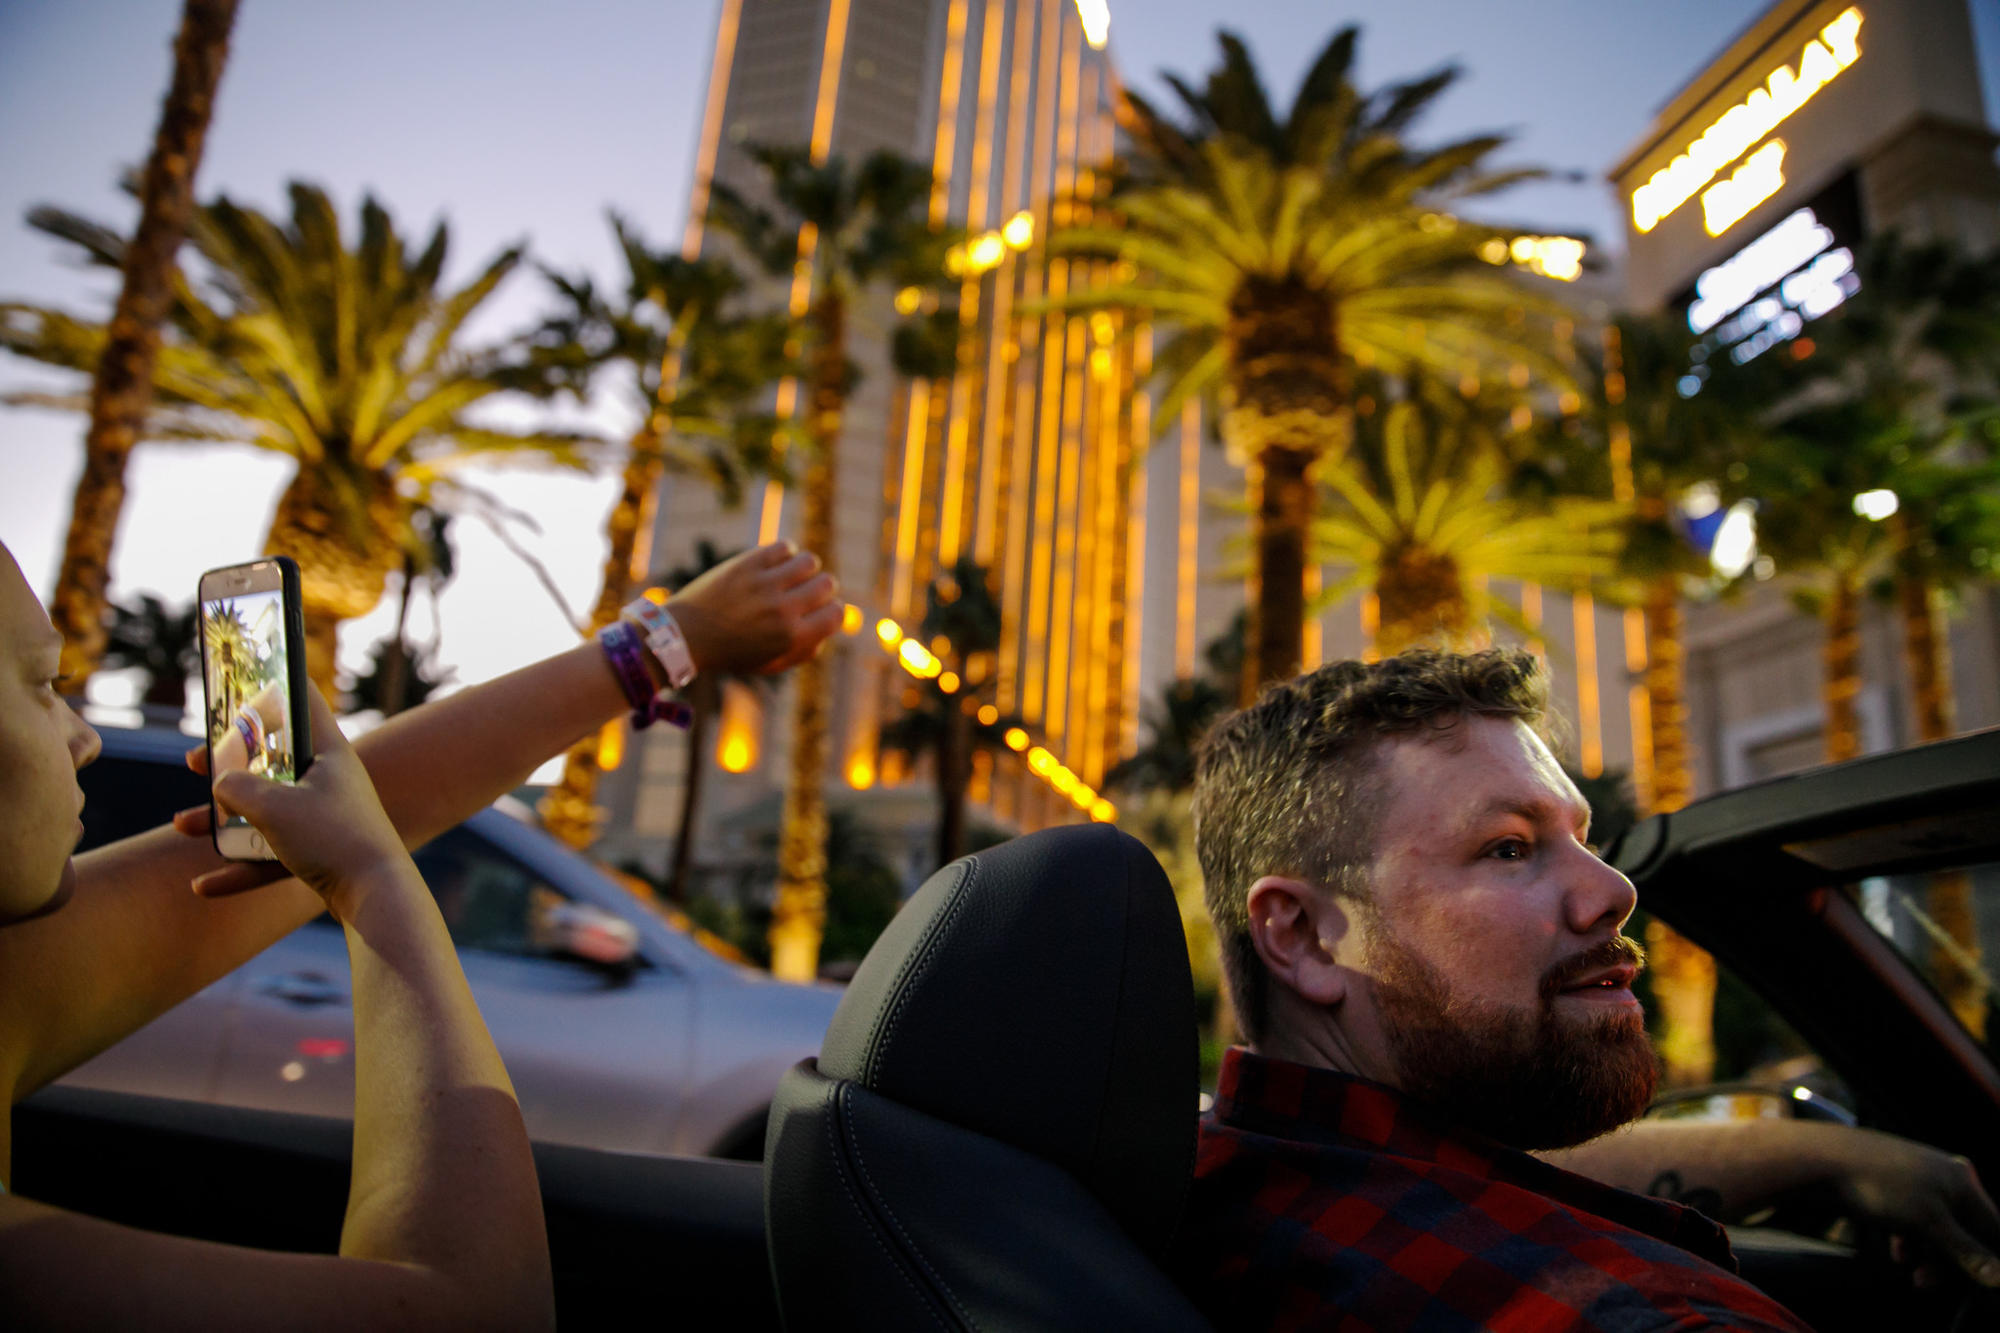 Brian MacKinnon drives through Las Vegas in the days after the shooting.